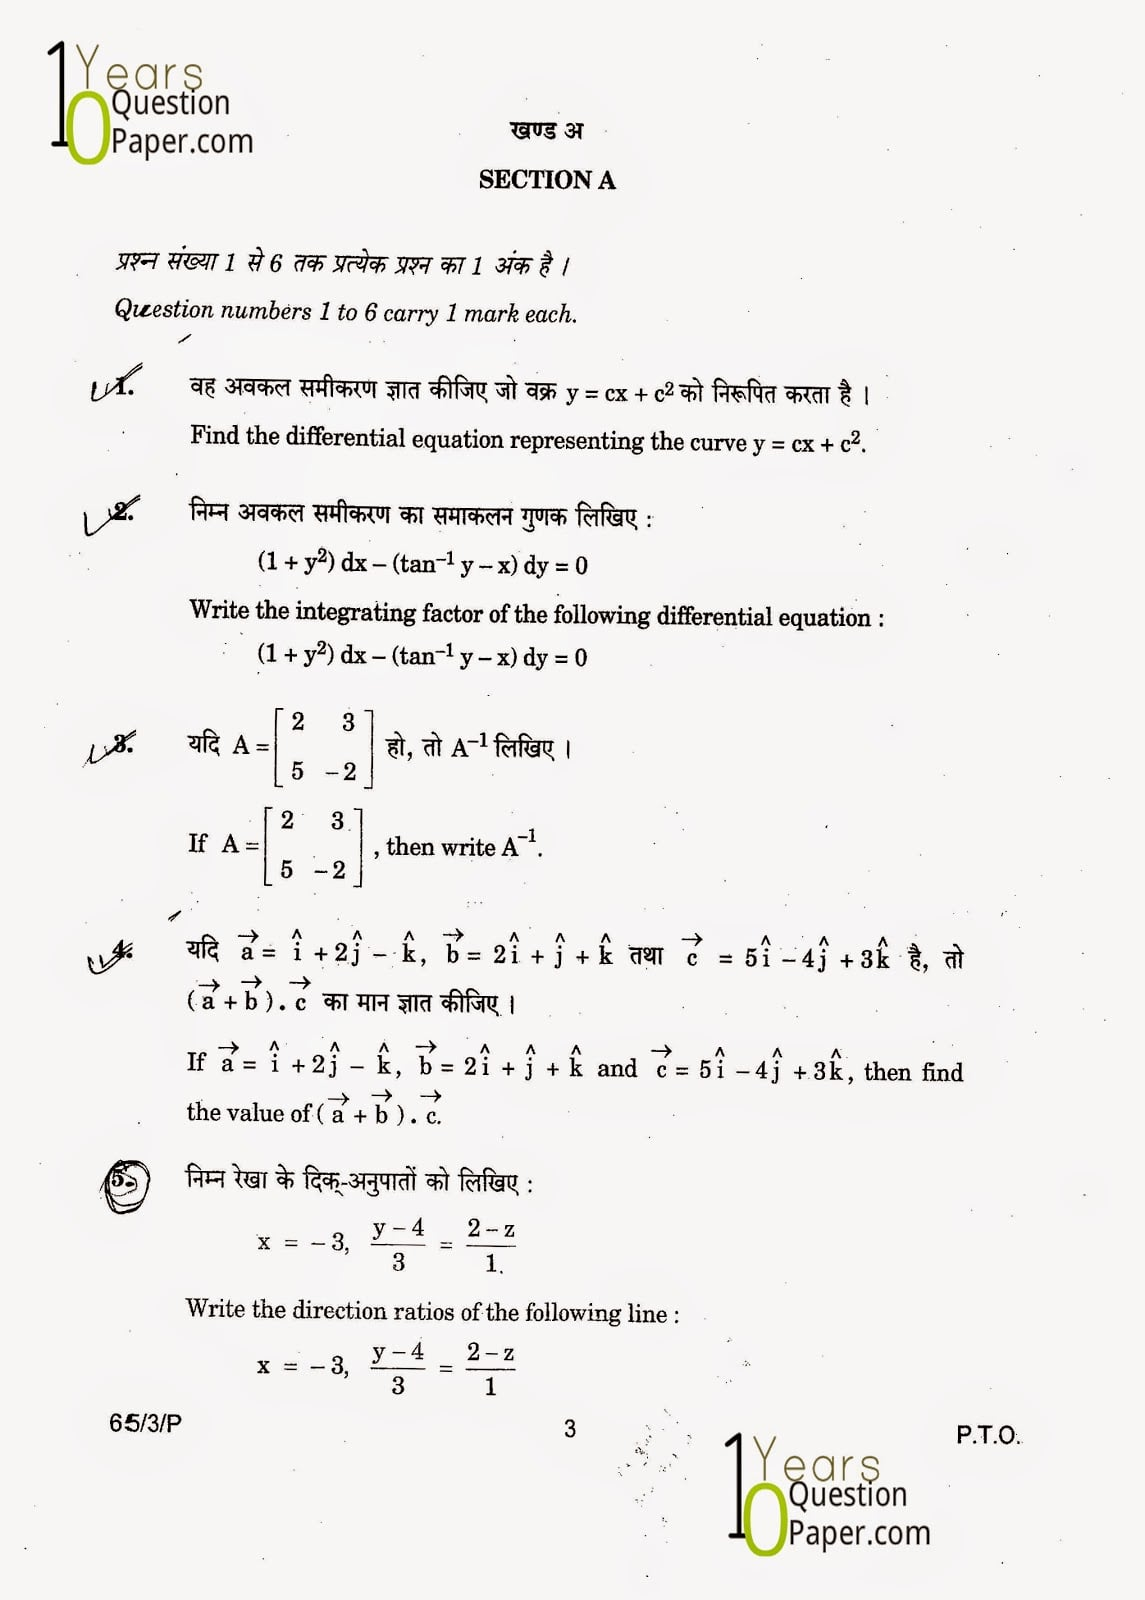 CBSE Class 12 Mathematics 2015 Question Paper